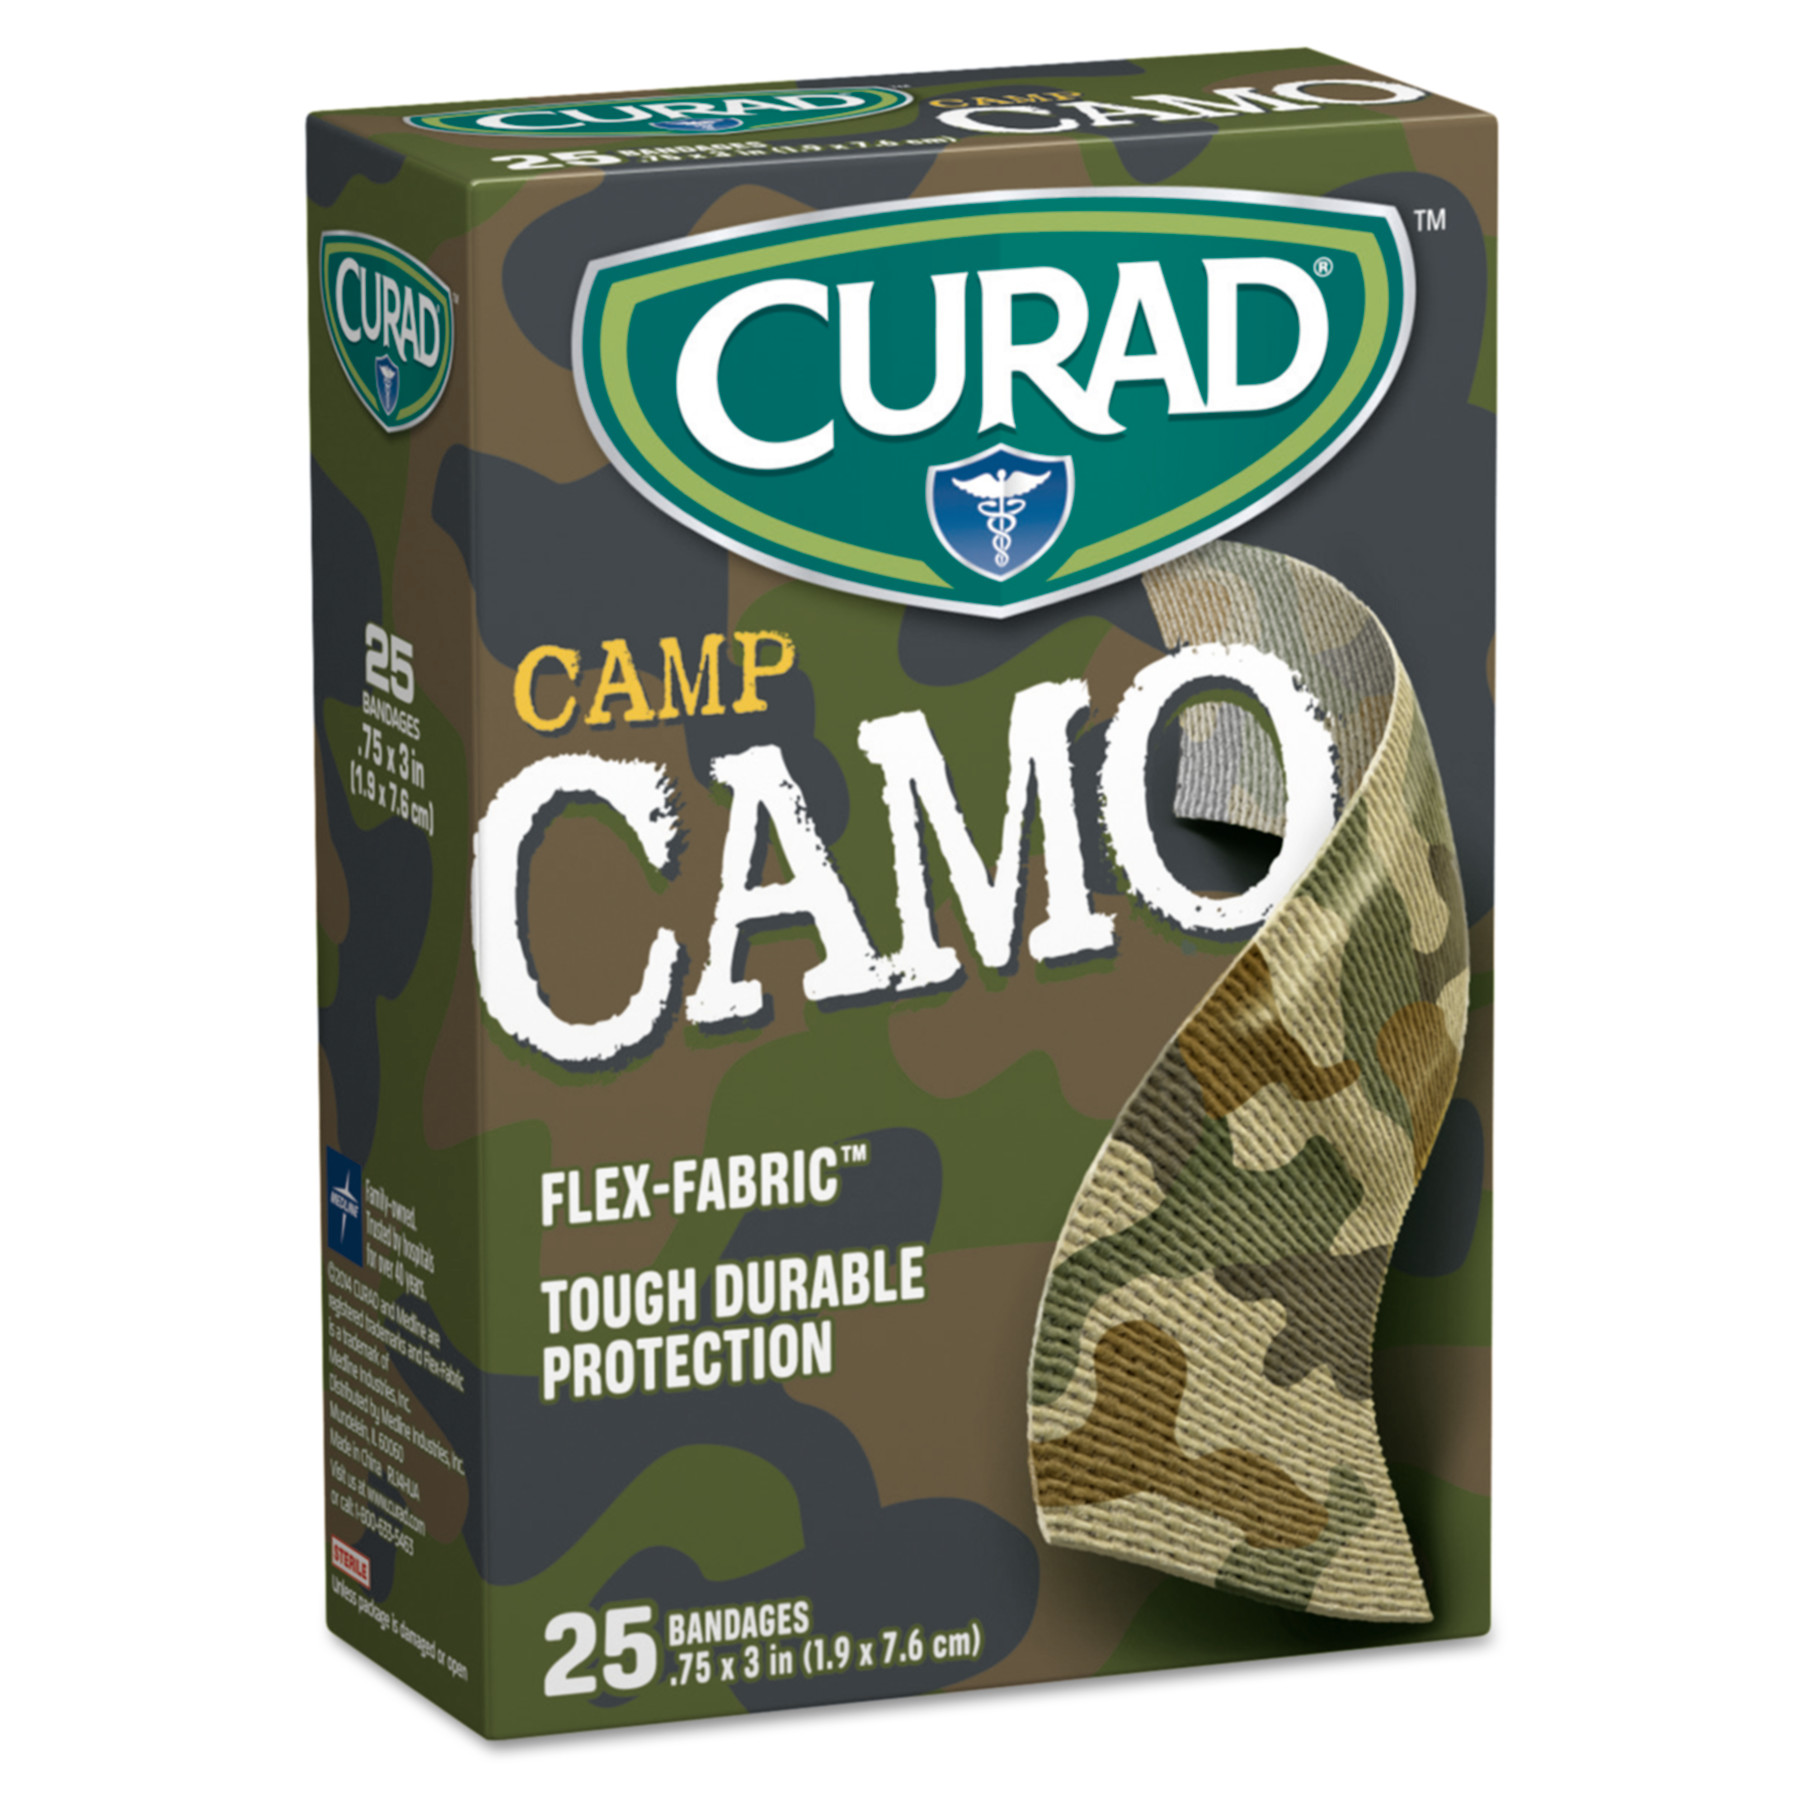 "Curad Kids Adhesive Bandages, Green Camouflage, 3/4"" x 3"", 25/Box"